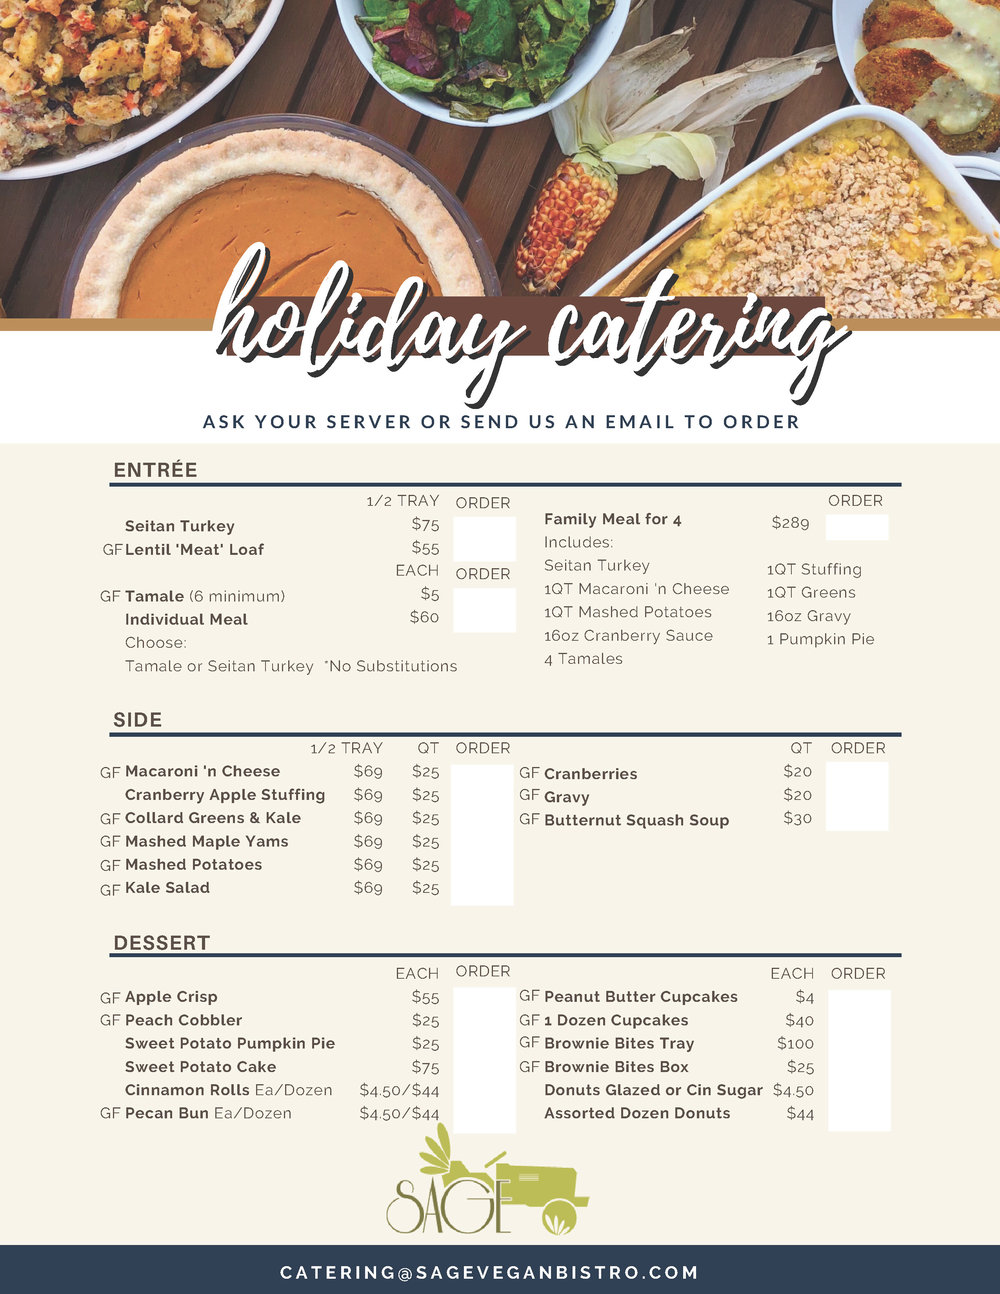 Holiday Catering Menu Update 10%2F2018.jpg